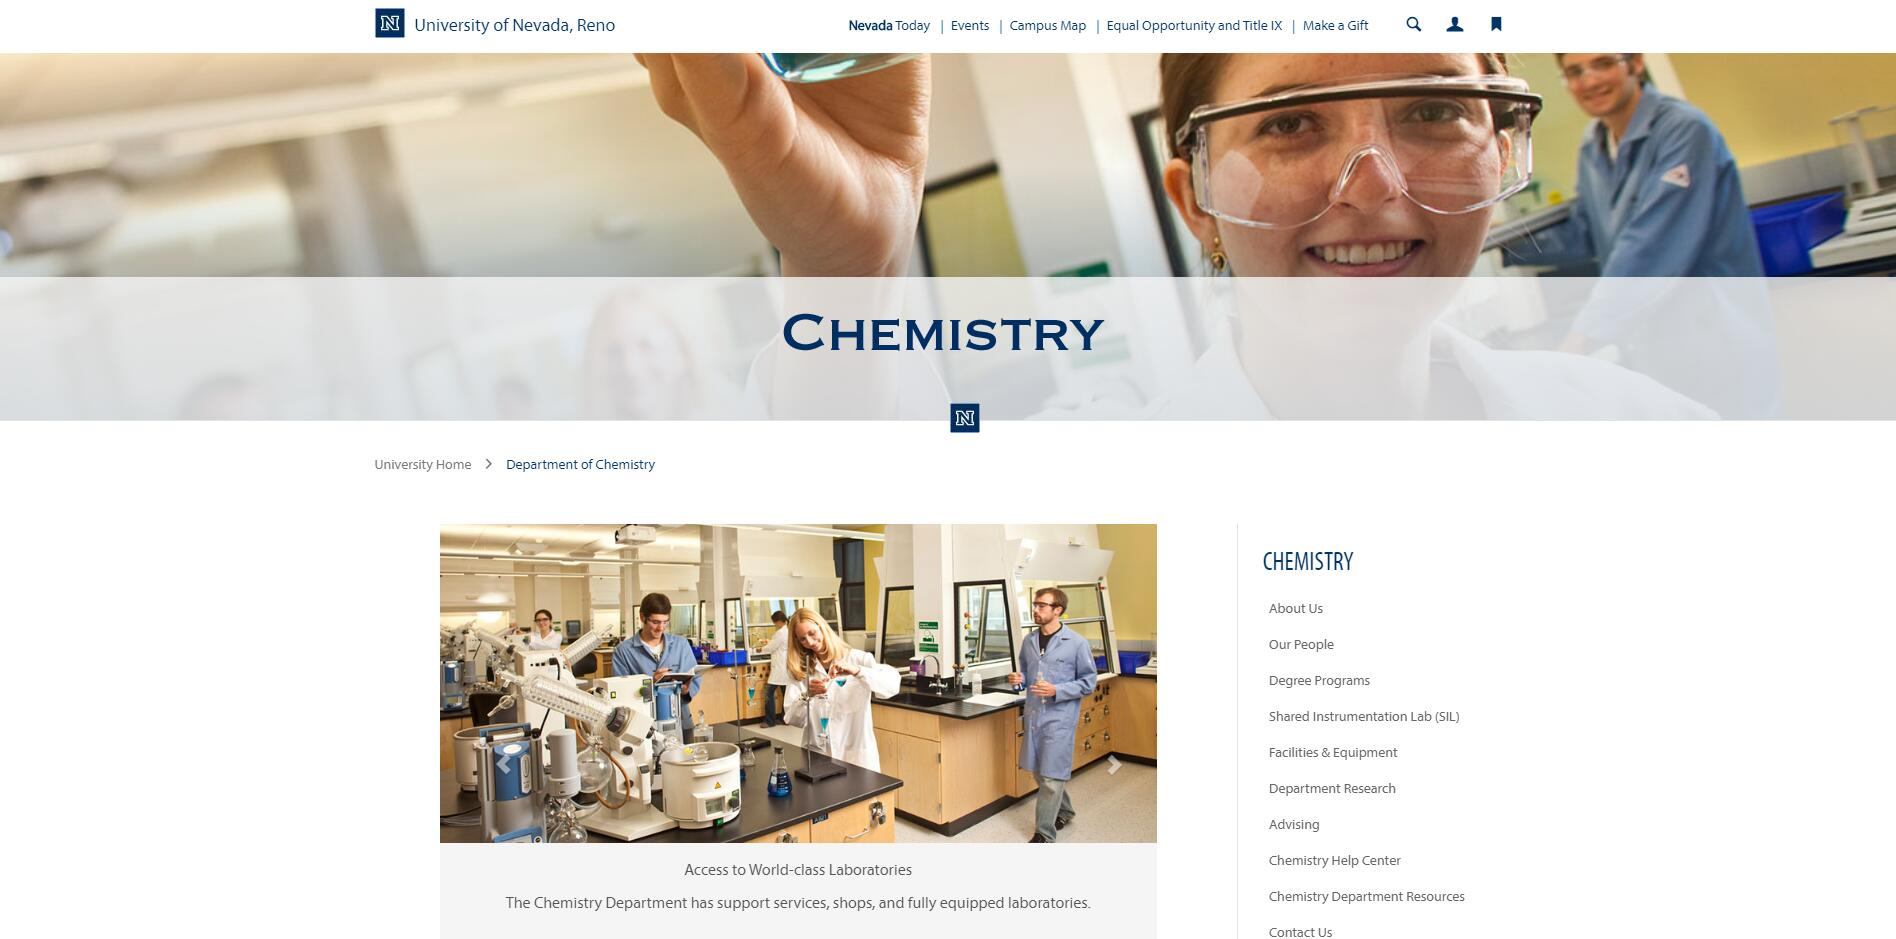 Top Chemistry Schools in Nevada